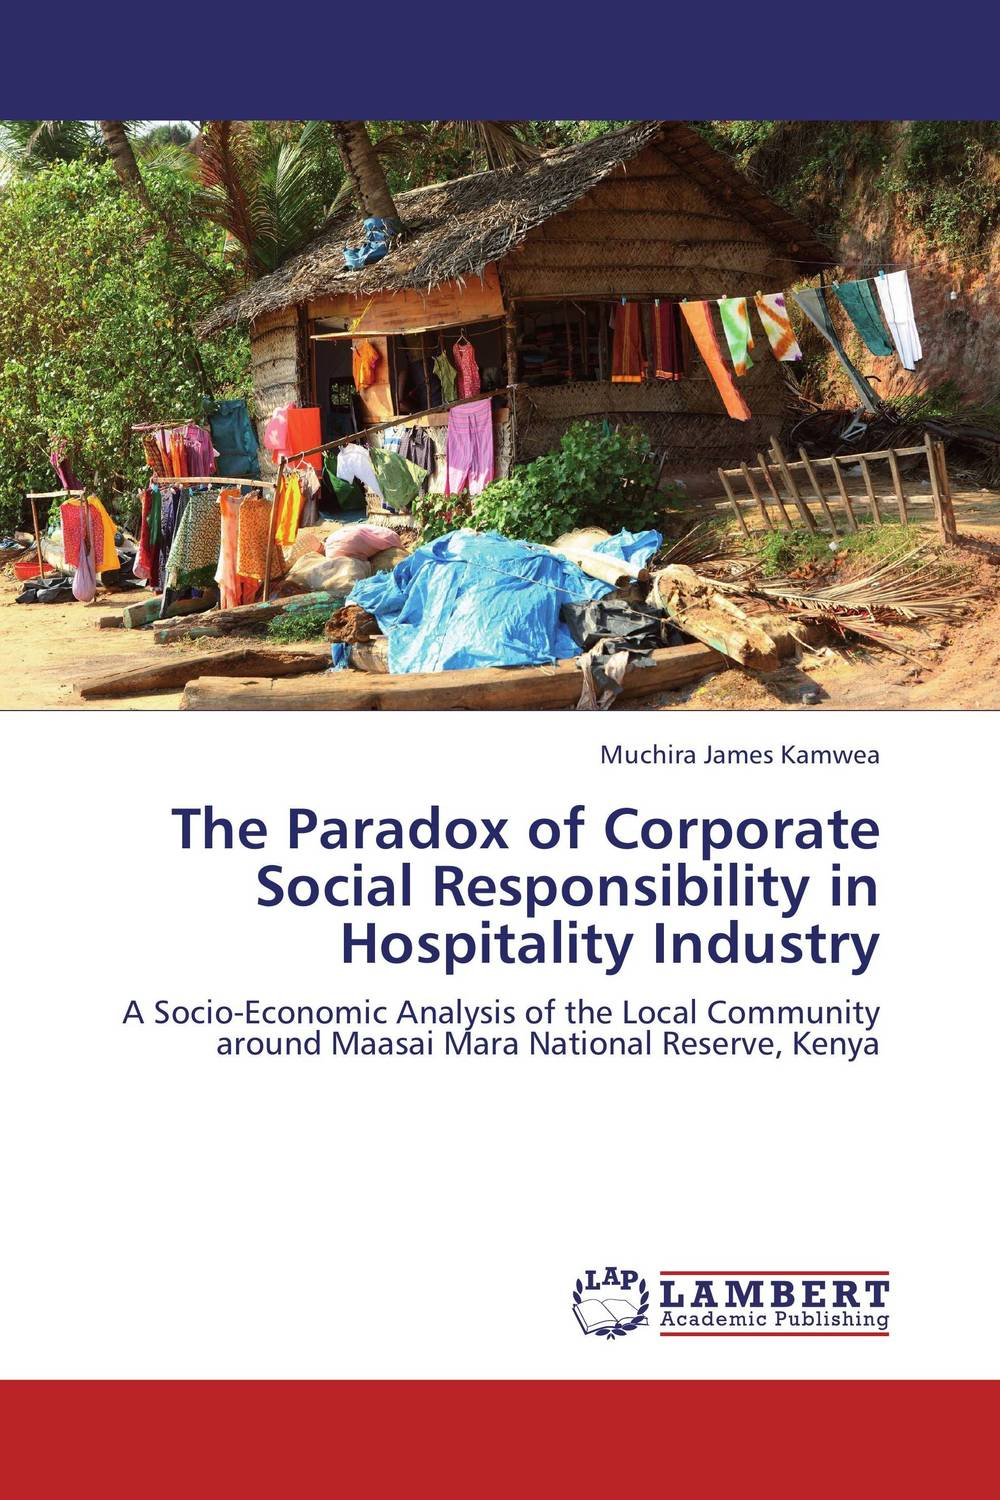 The Paradox of Corporate Social Responsibility in Hospitality Industry corporate social responsibility csr in ethiopian floriculture industry